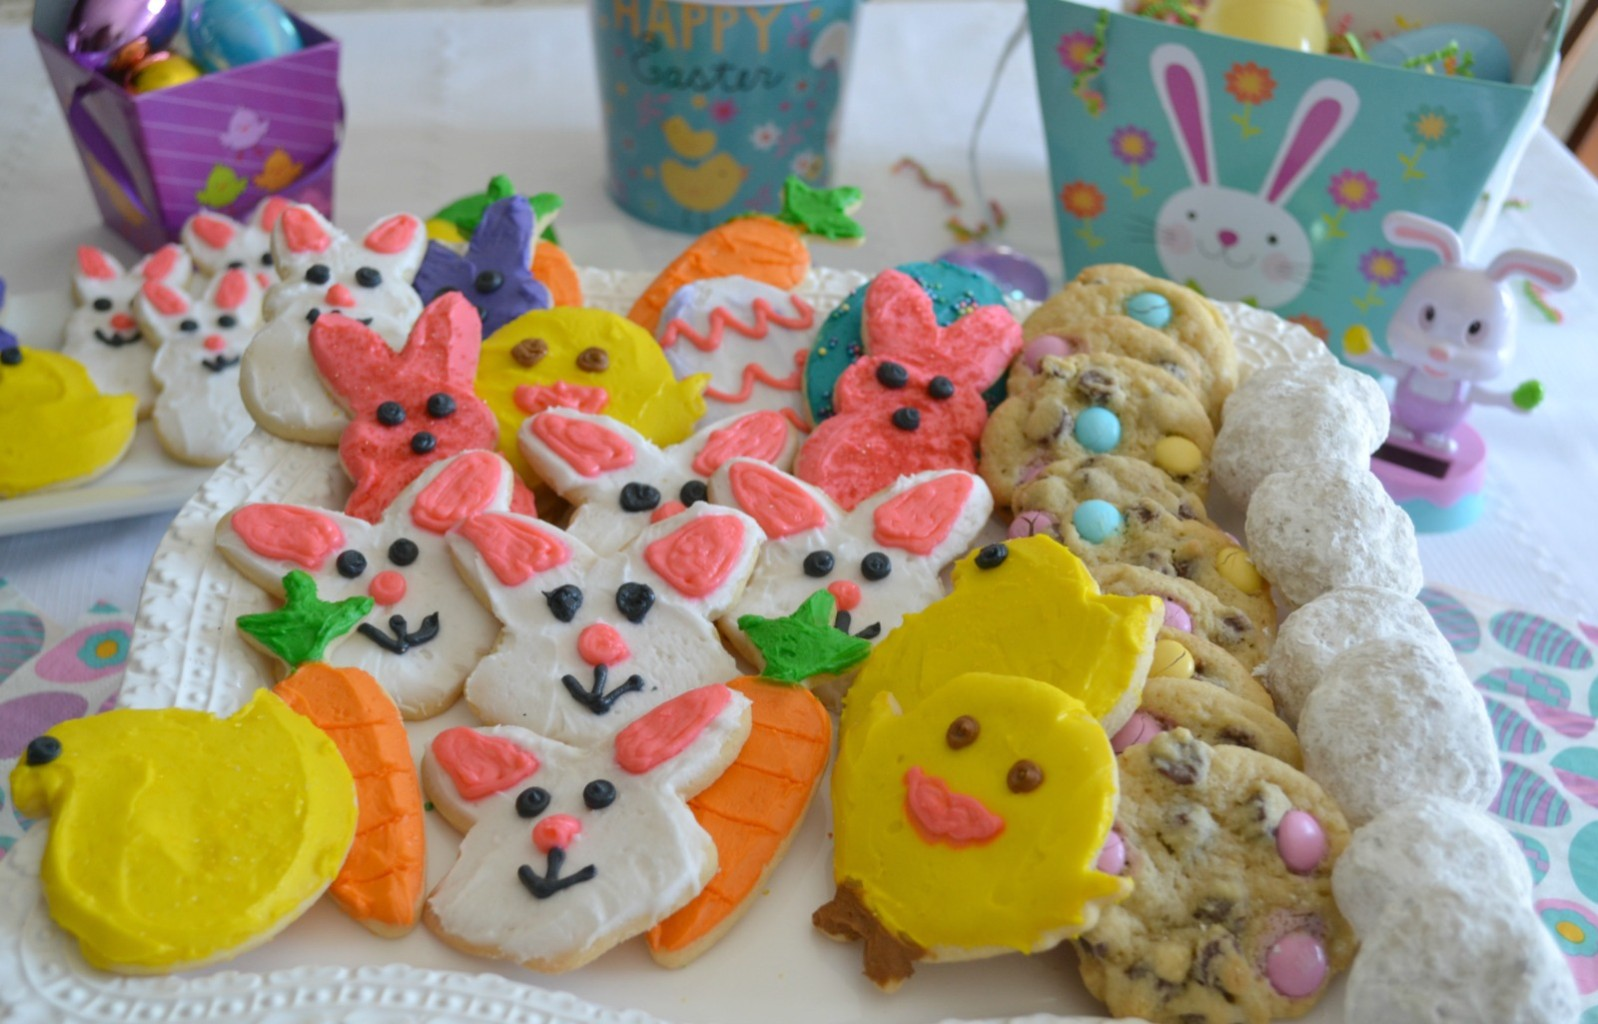 Easter treats for your children or grandchildren always need to include decorated sugar cookies.